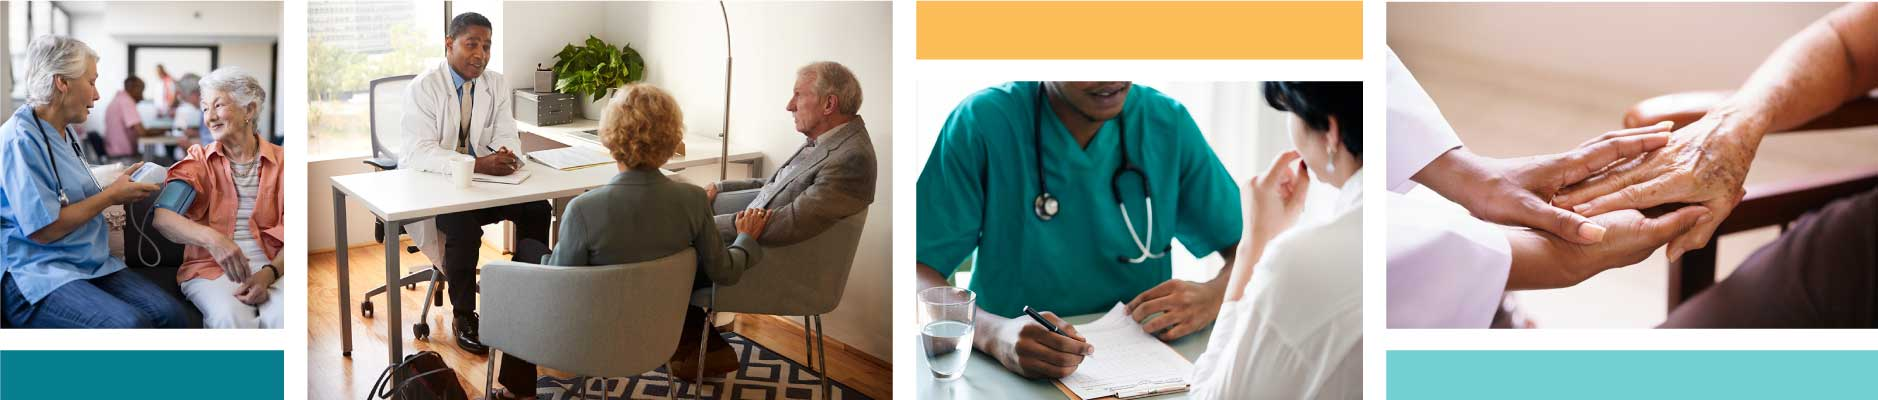 Photo collage of doctors and patients